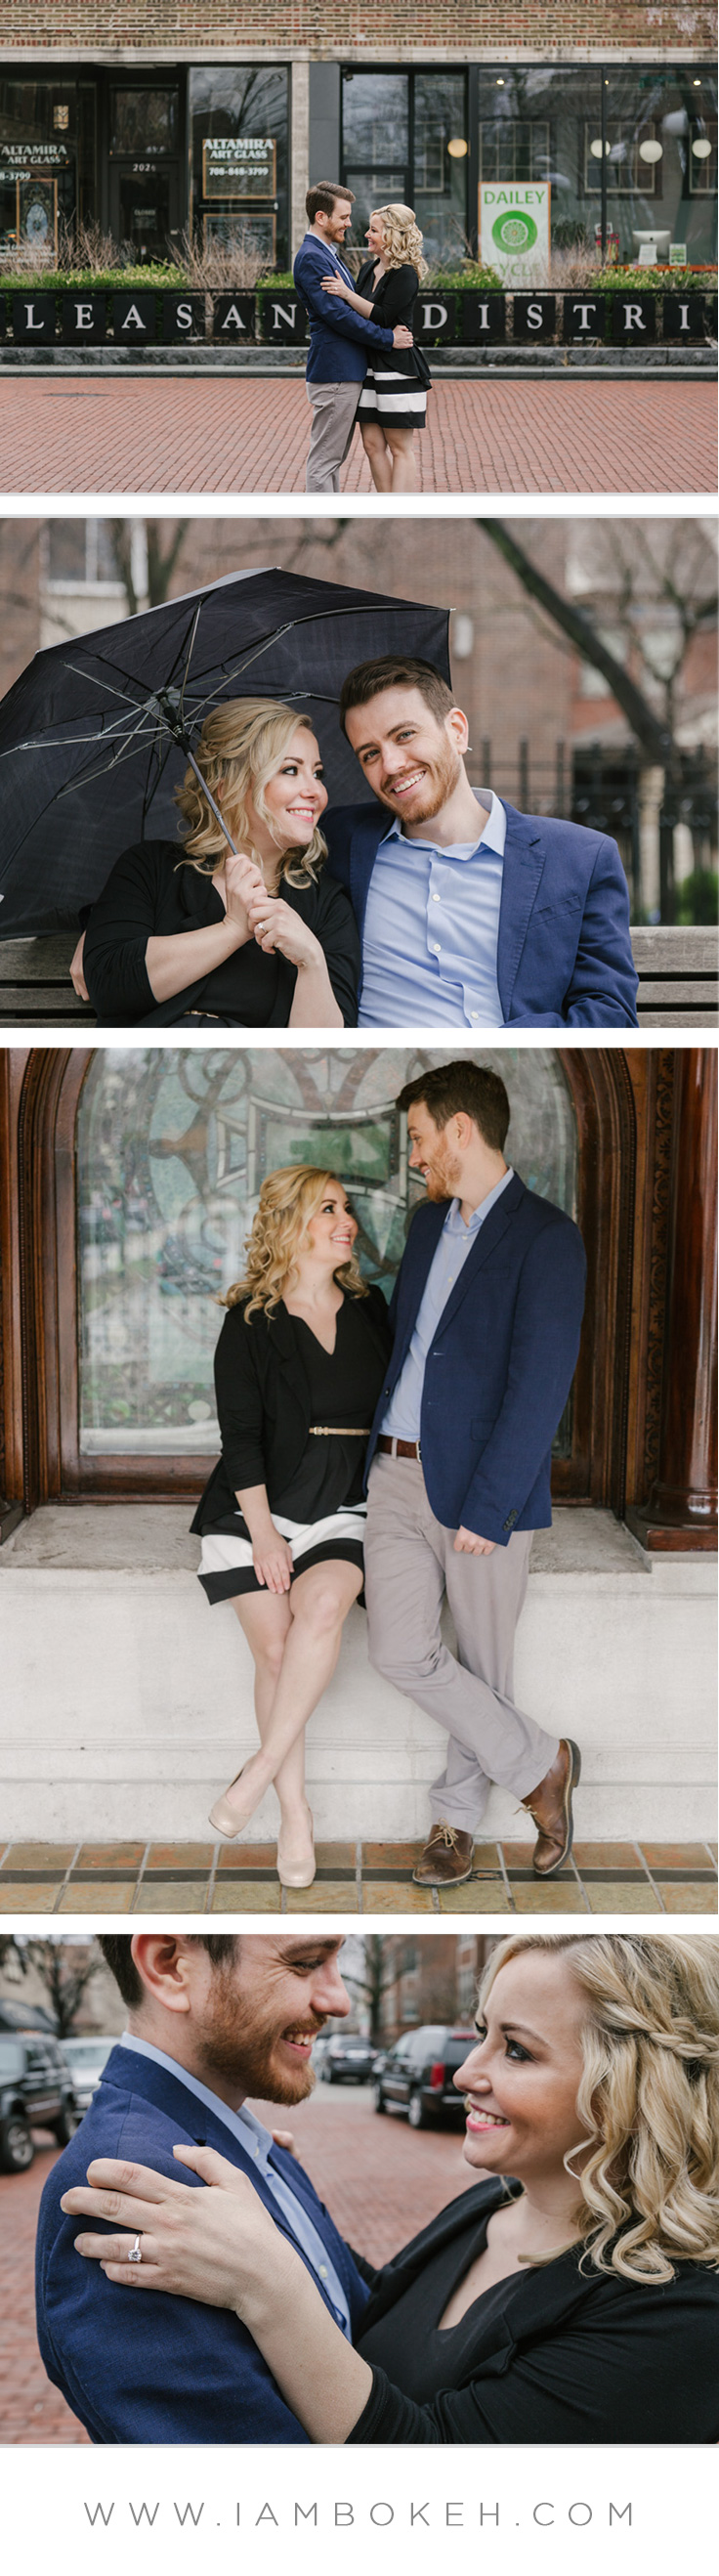 Engagement Shoot in Downtown Oak Park: Craig & Sarah